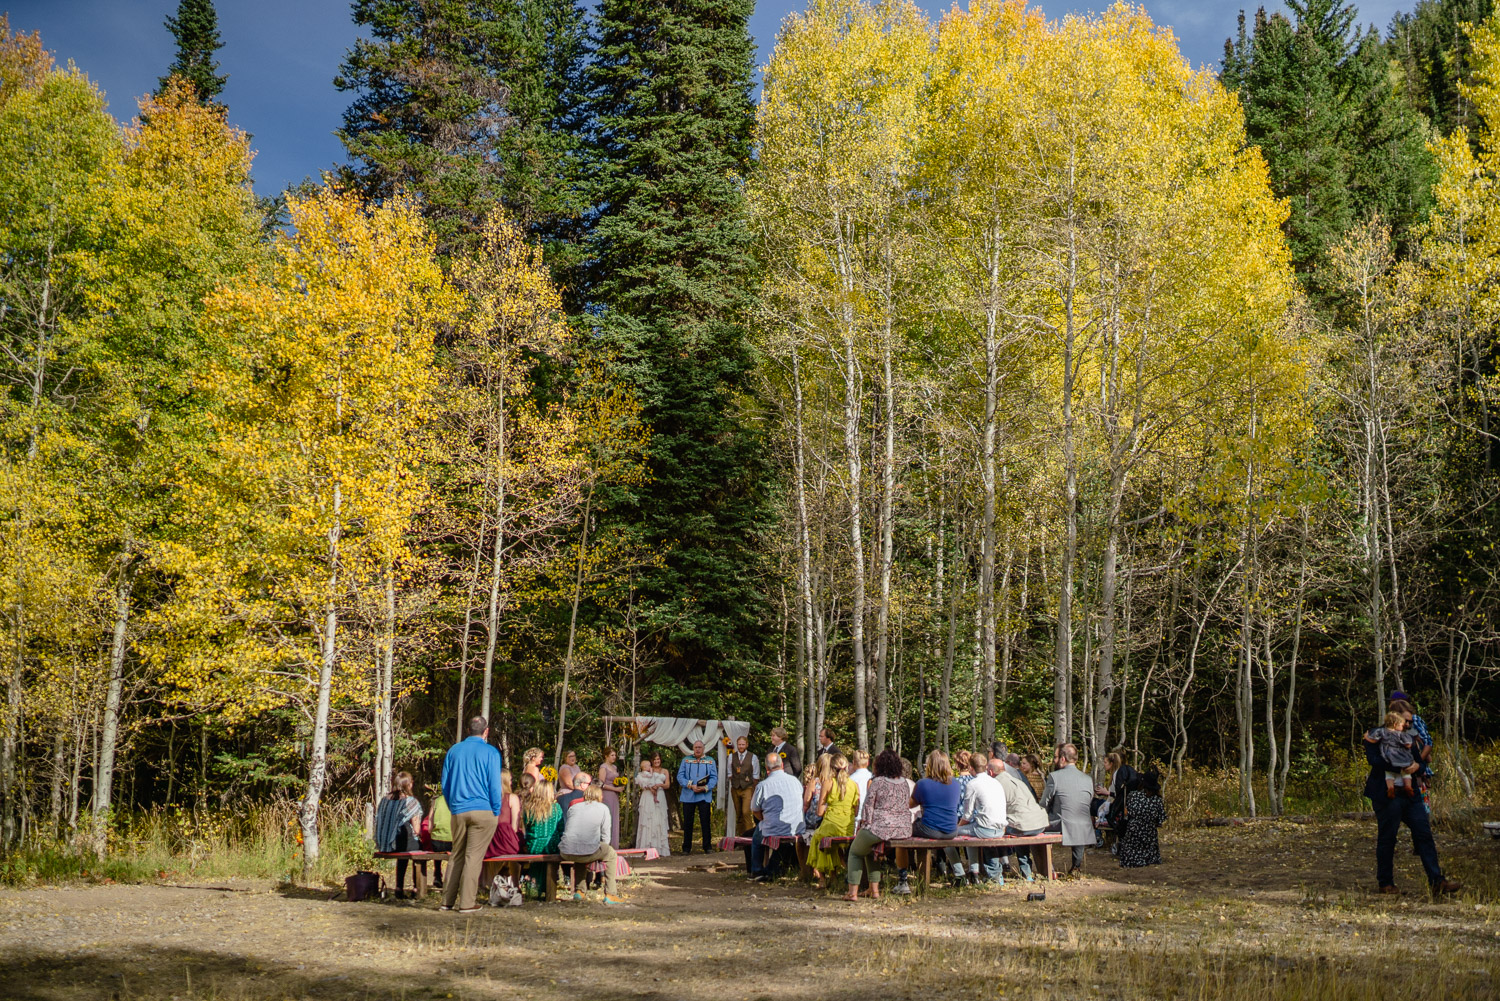 outdoor wedding ceremony aspen trees spruces campground